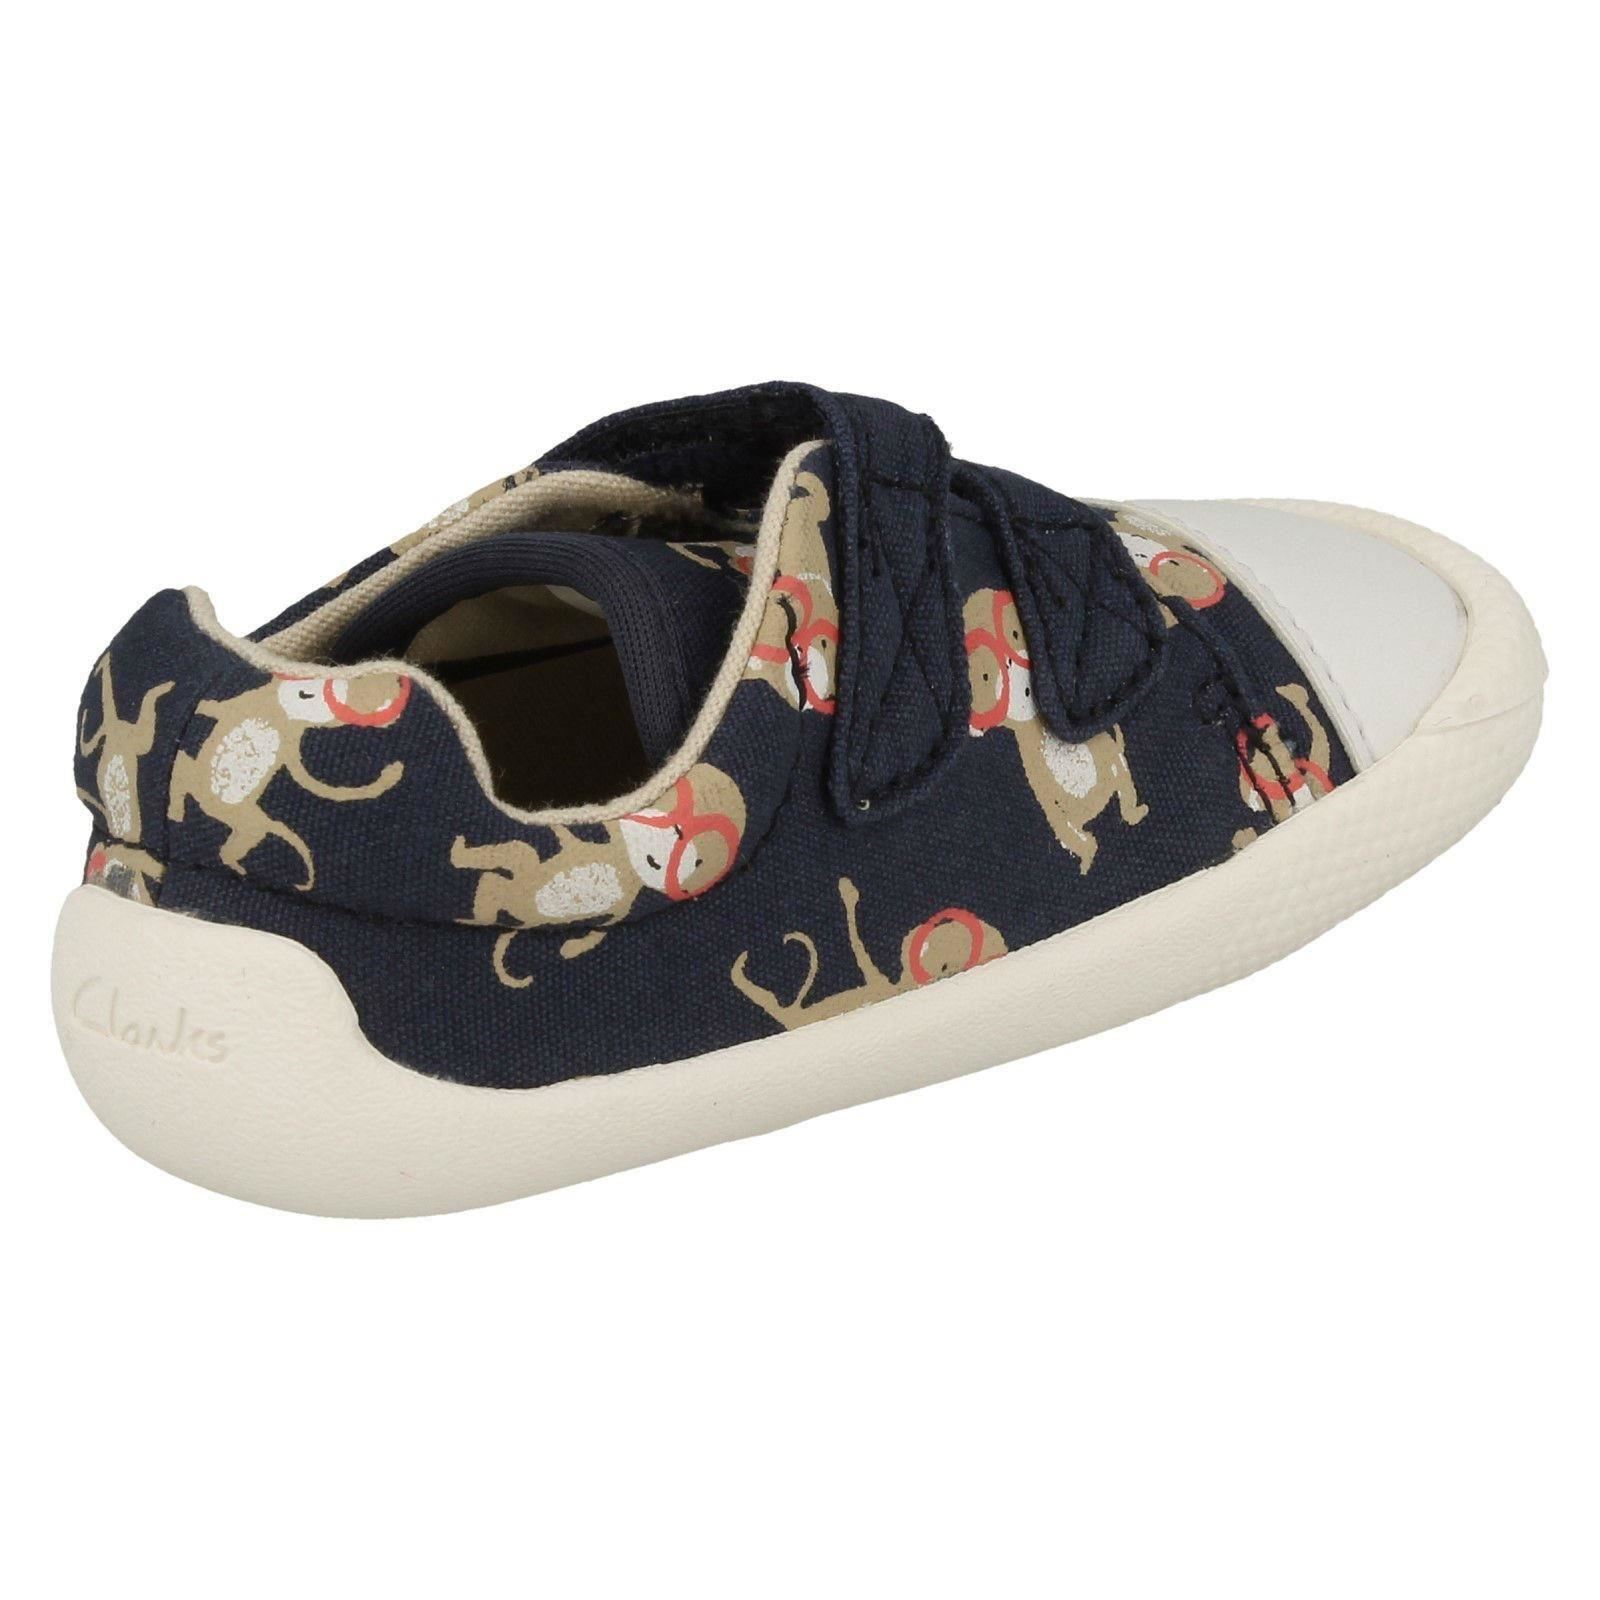 57703f8440b Infant Toddler Baby Boys Clarks Hook   Loop Washable Canvas Shoes ...